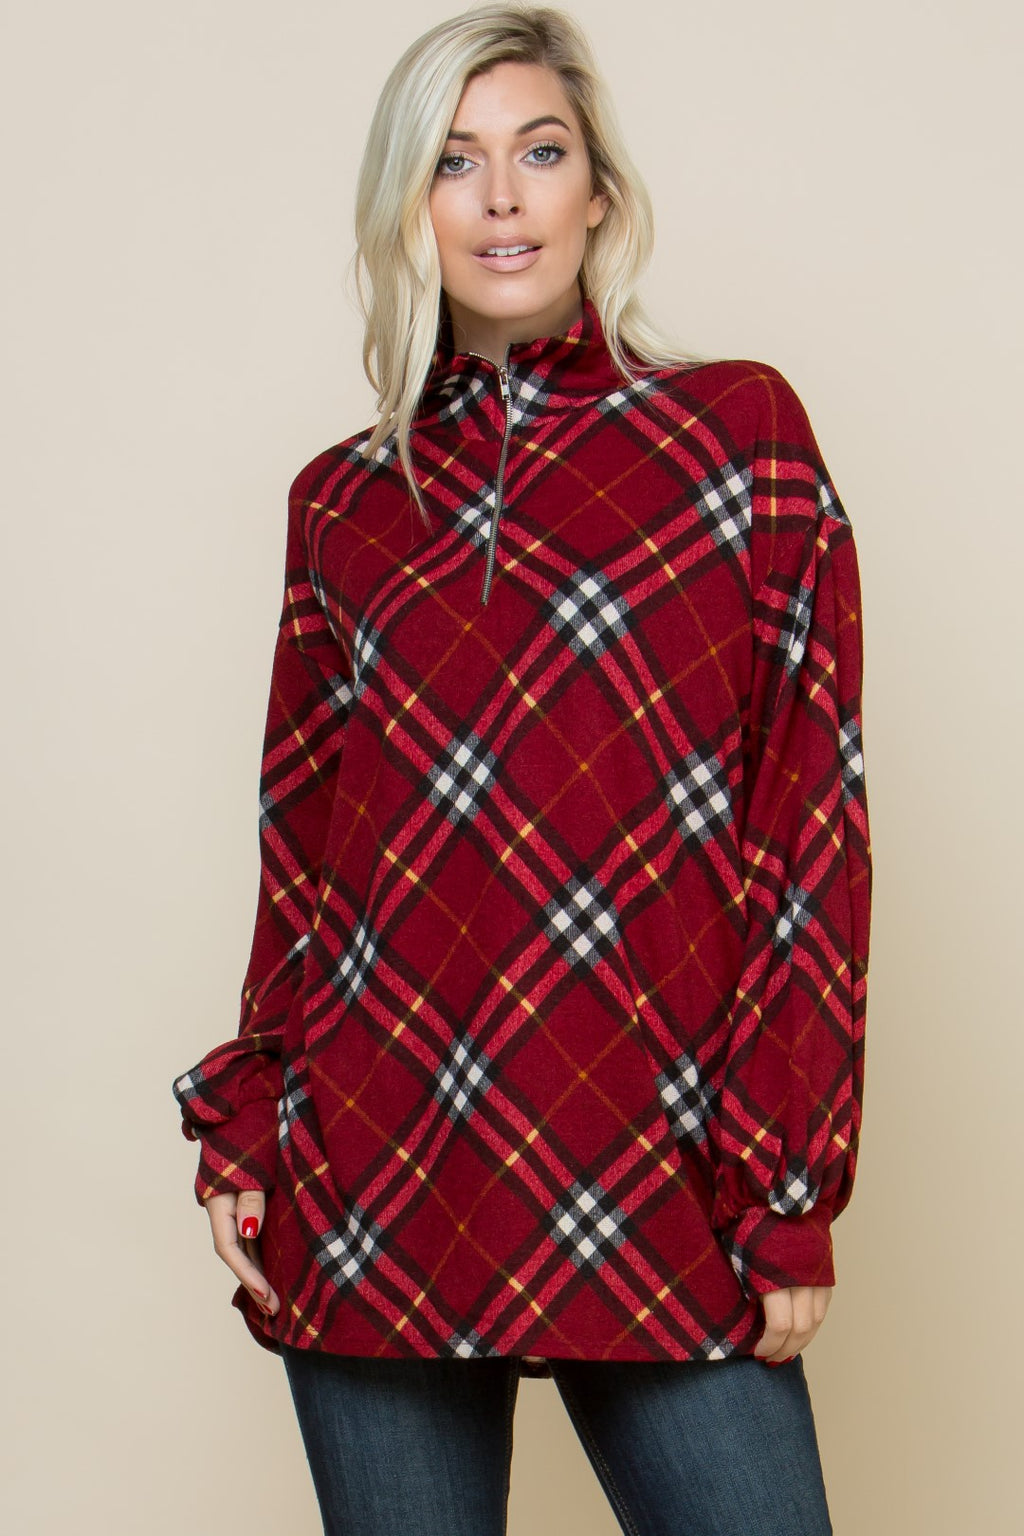 Wine Diagonal Plaid Zipper Front Knit Top